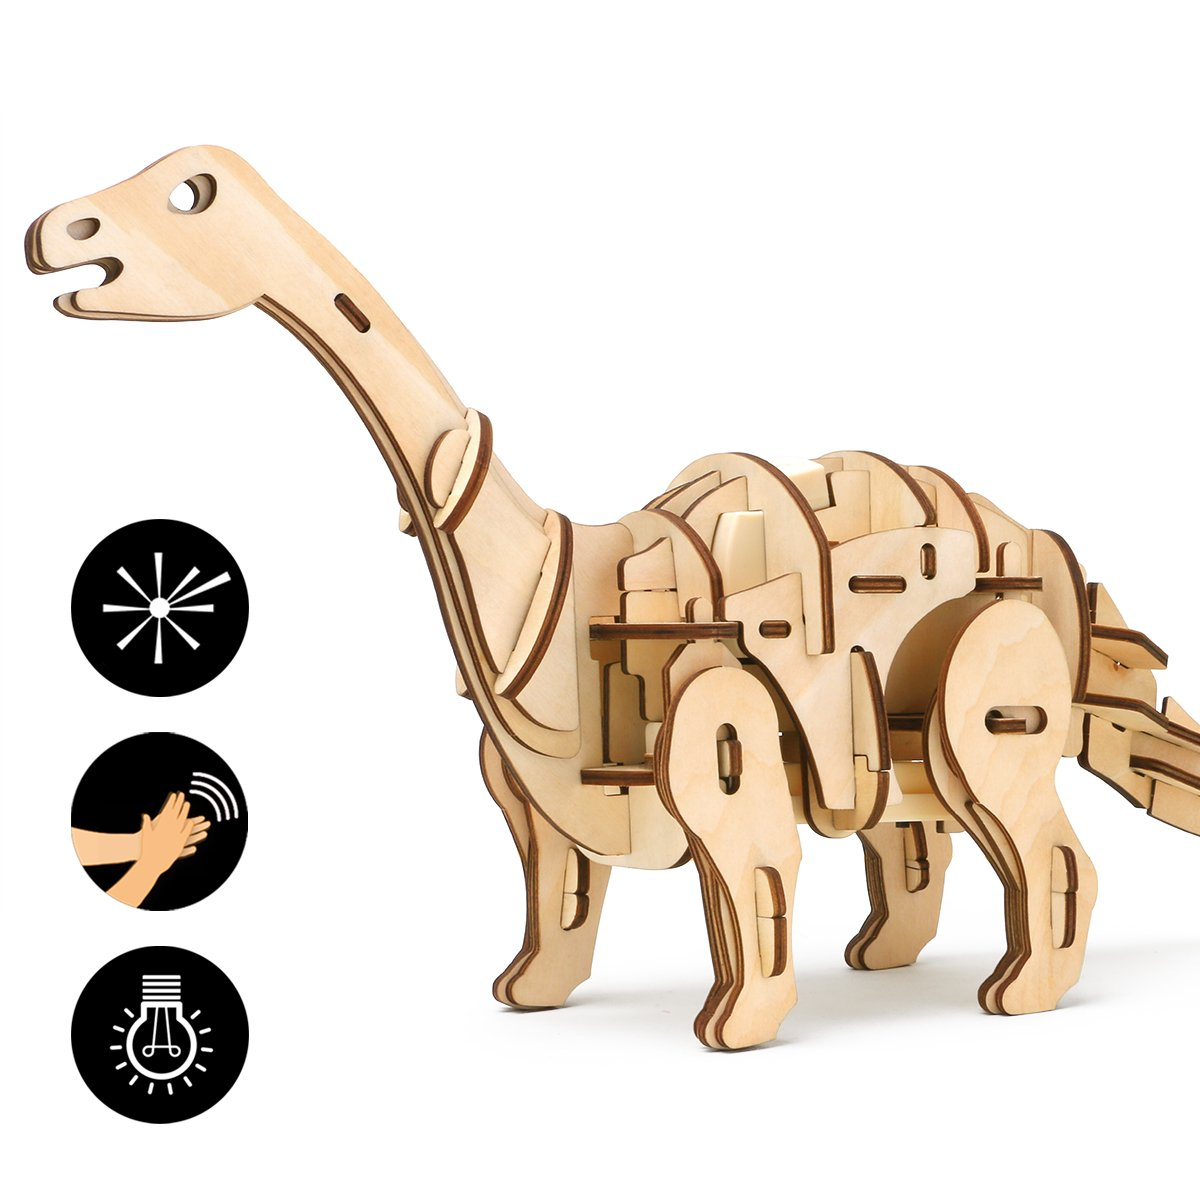 ROBOTIME 3D Wooden Dinosaur Puzzle Remote Control Toys Laser-Cut Robot Children Building Toys Cool Engineer Kit Apatosaurus Best Birthday Gifts for Boys and Girls 7 8 9 10 11 12 Year Old